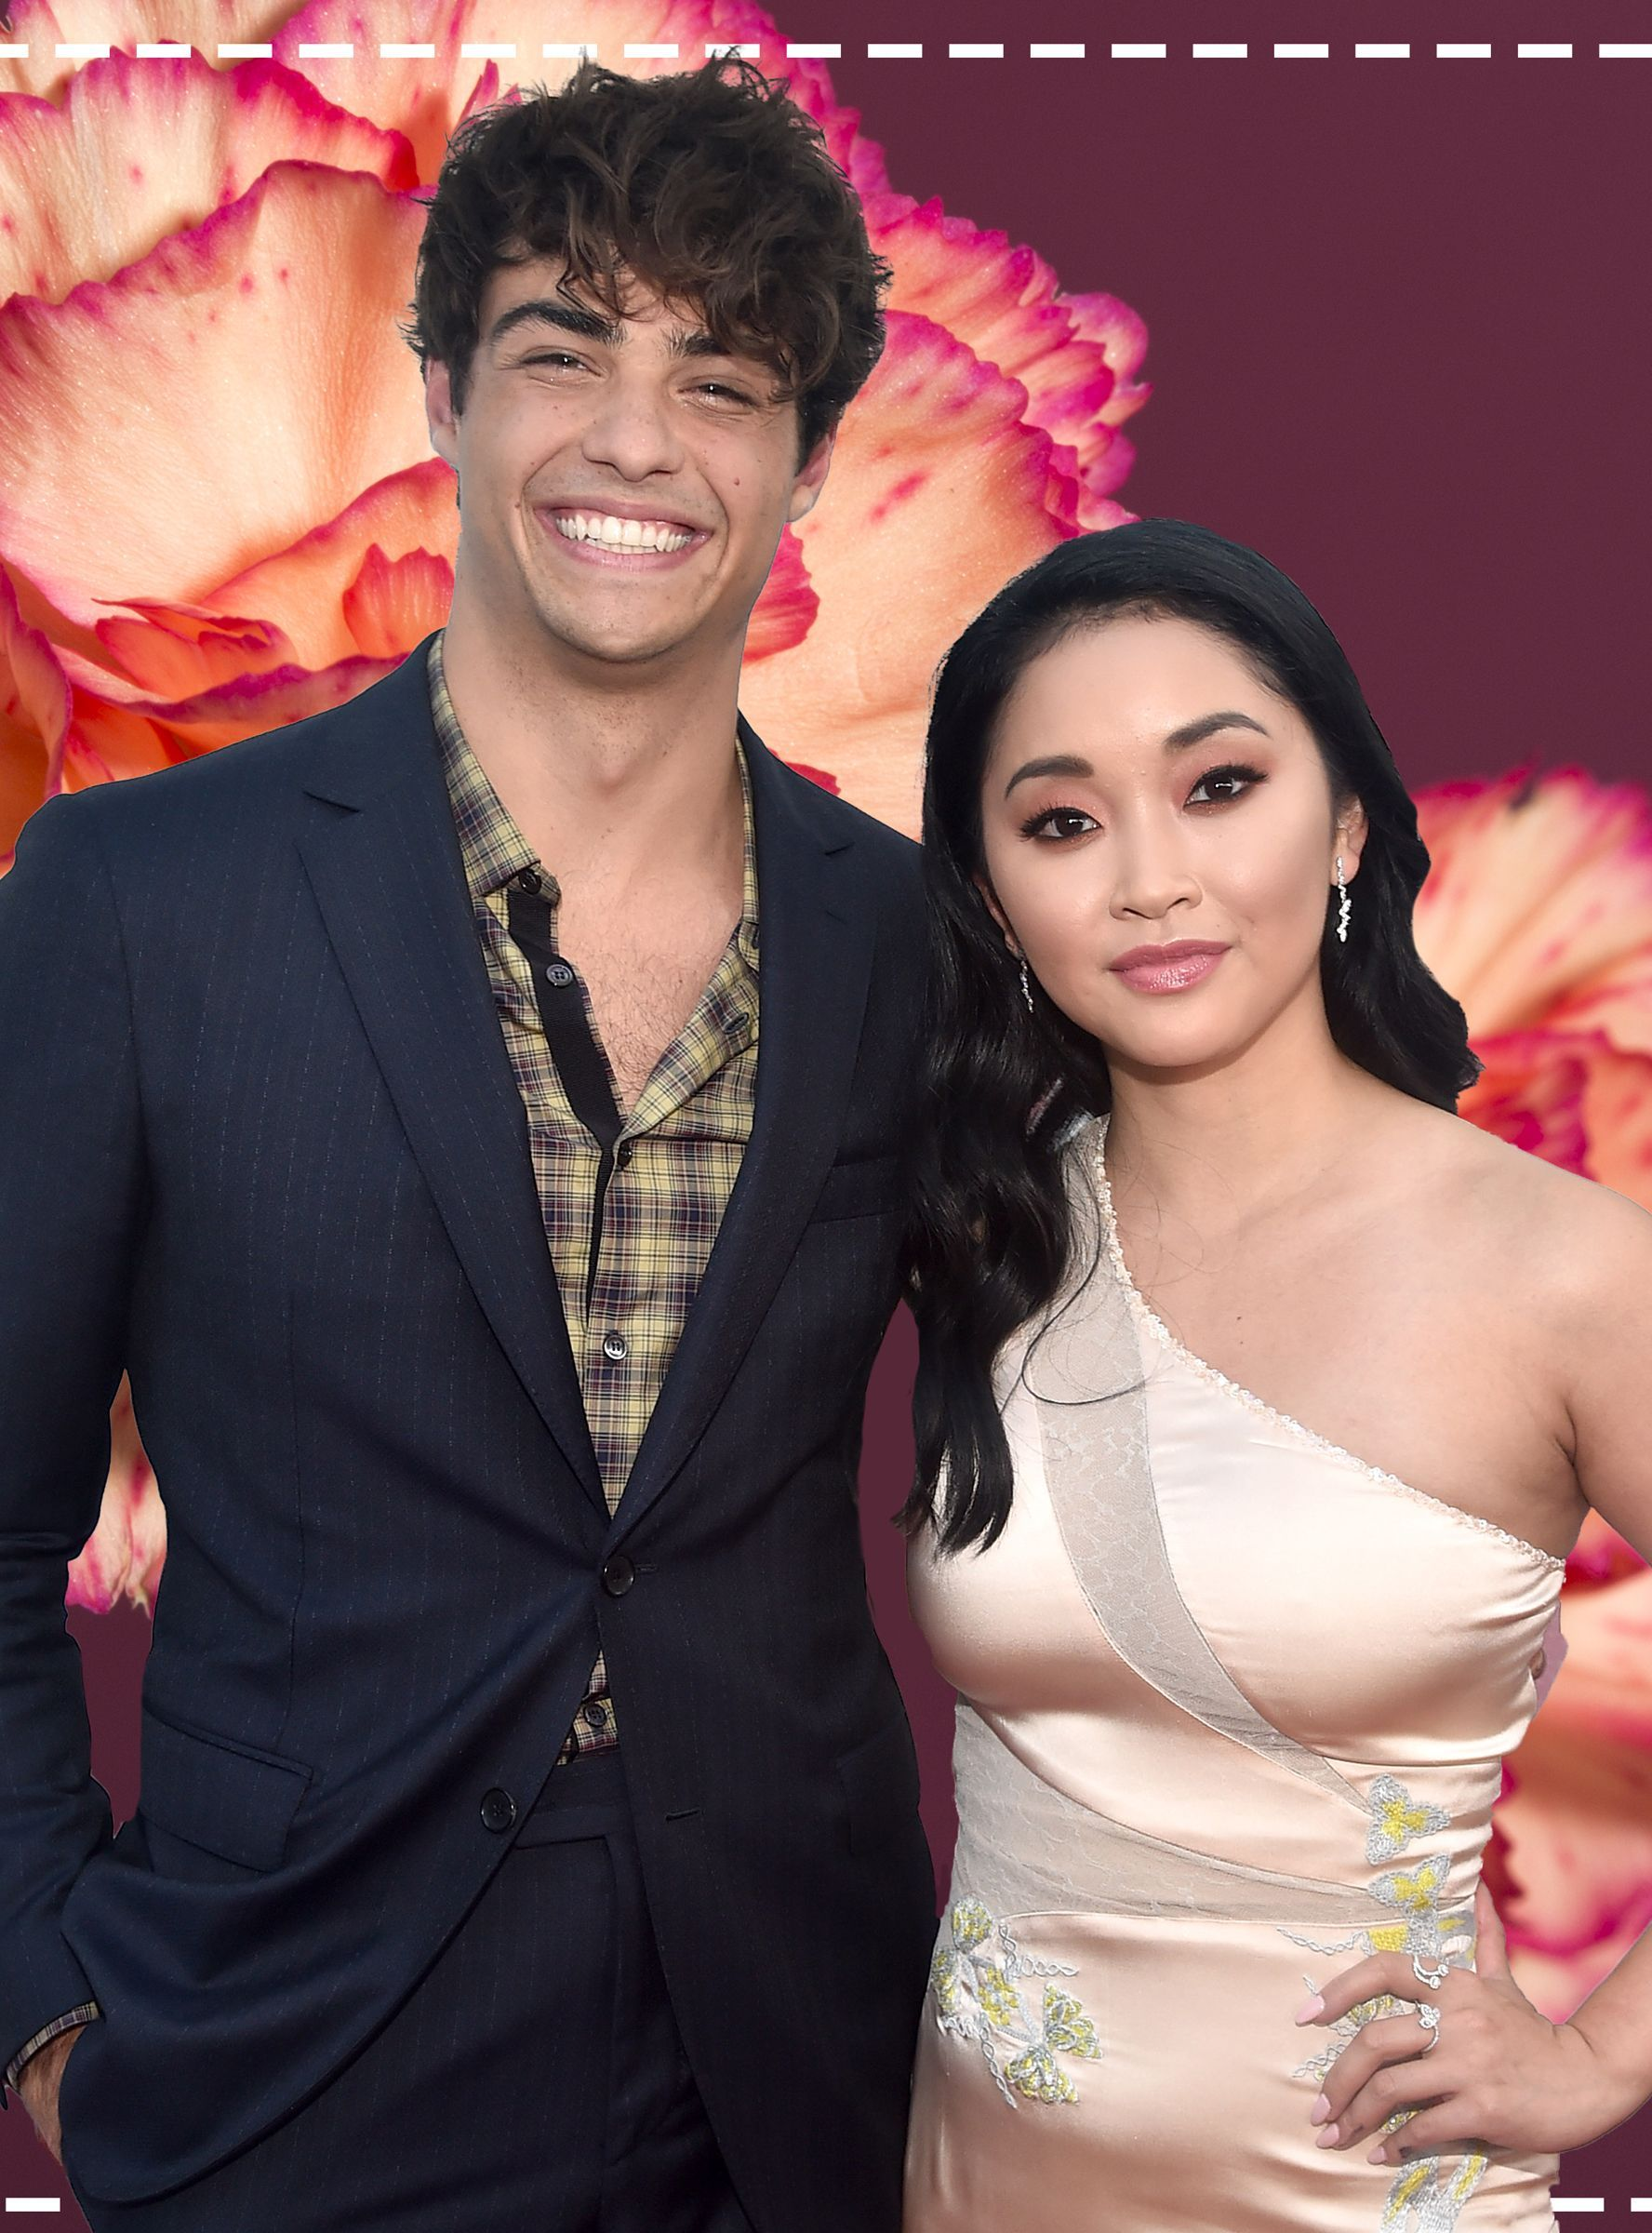 Lana Condor Noah Centineo Made A Contract Just Like Their To